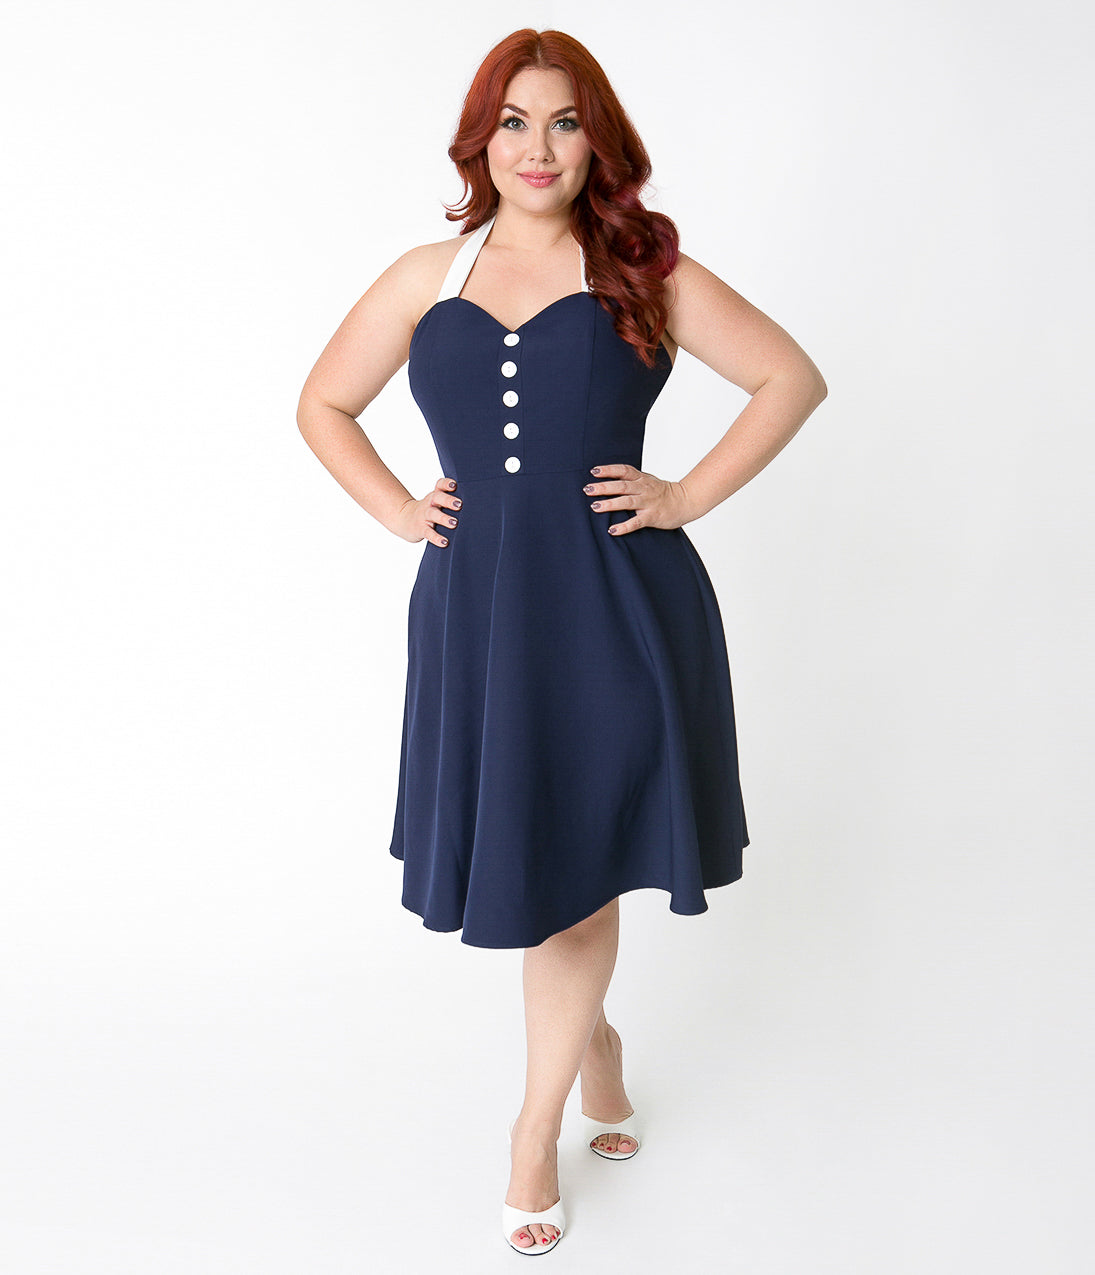 Pin Up Dresses | Pin Up Clothing Plus Size Navy Blue  White Button Halter Swing Dress $58.00 AT vintagedancer.com